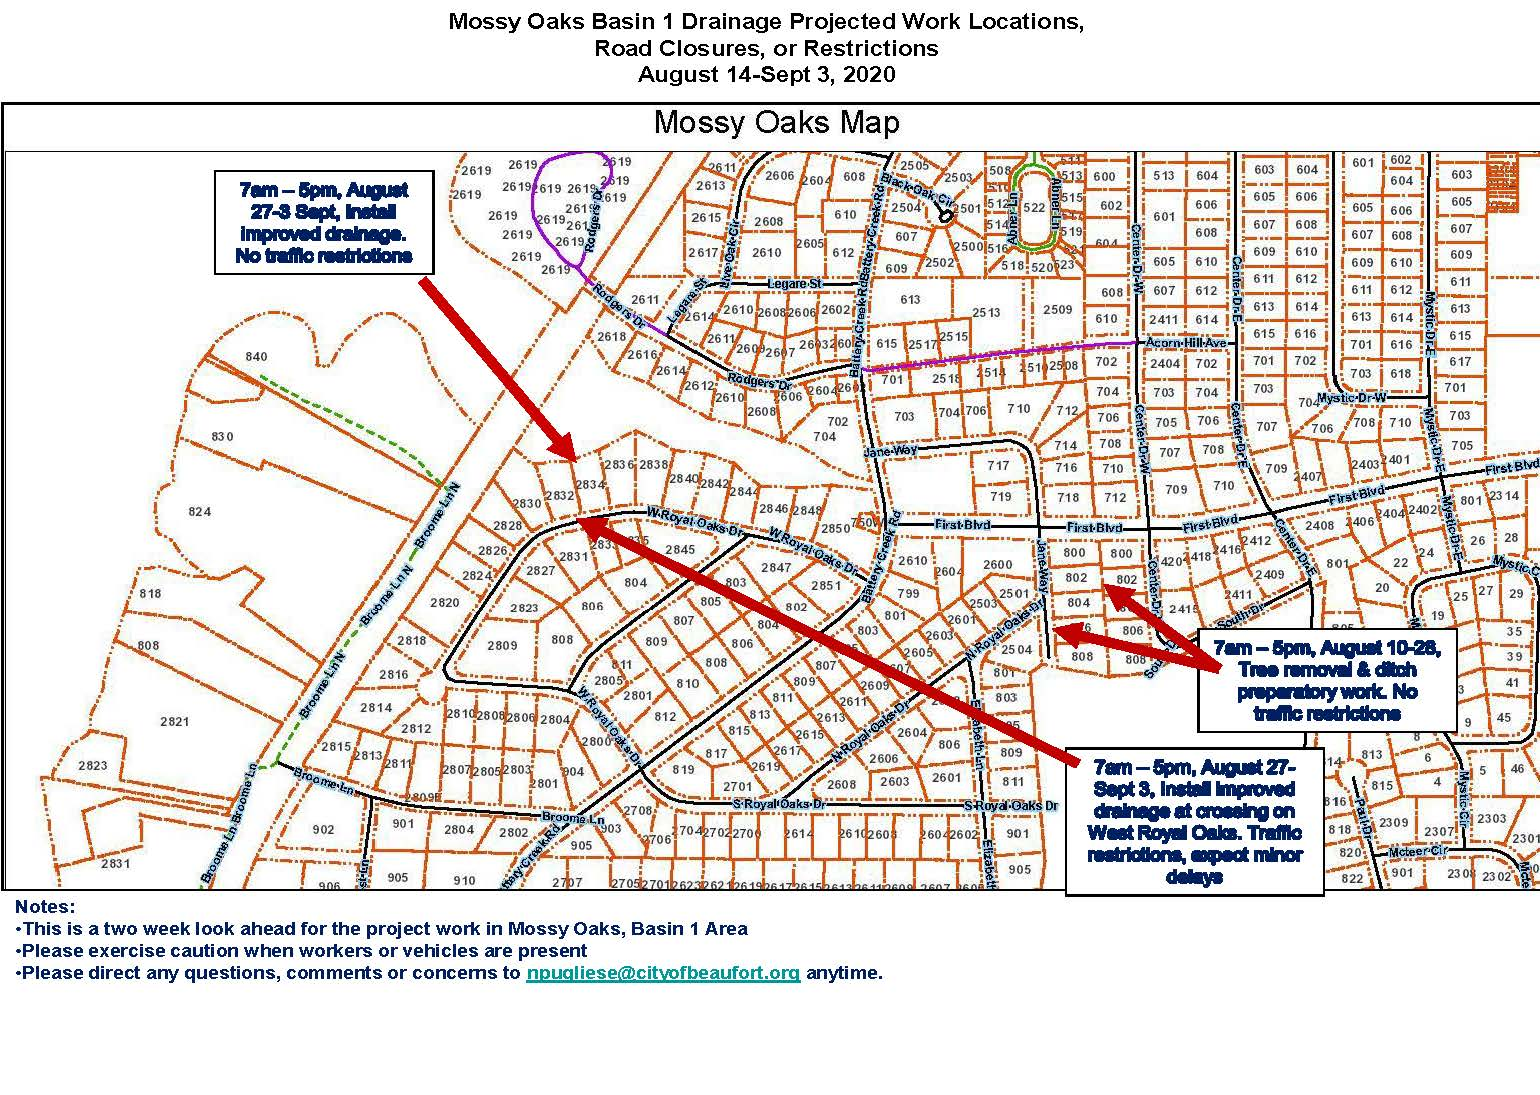 Mossy Oaks Drainage Update Aug. 14-Sept.3